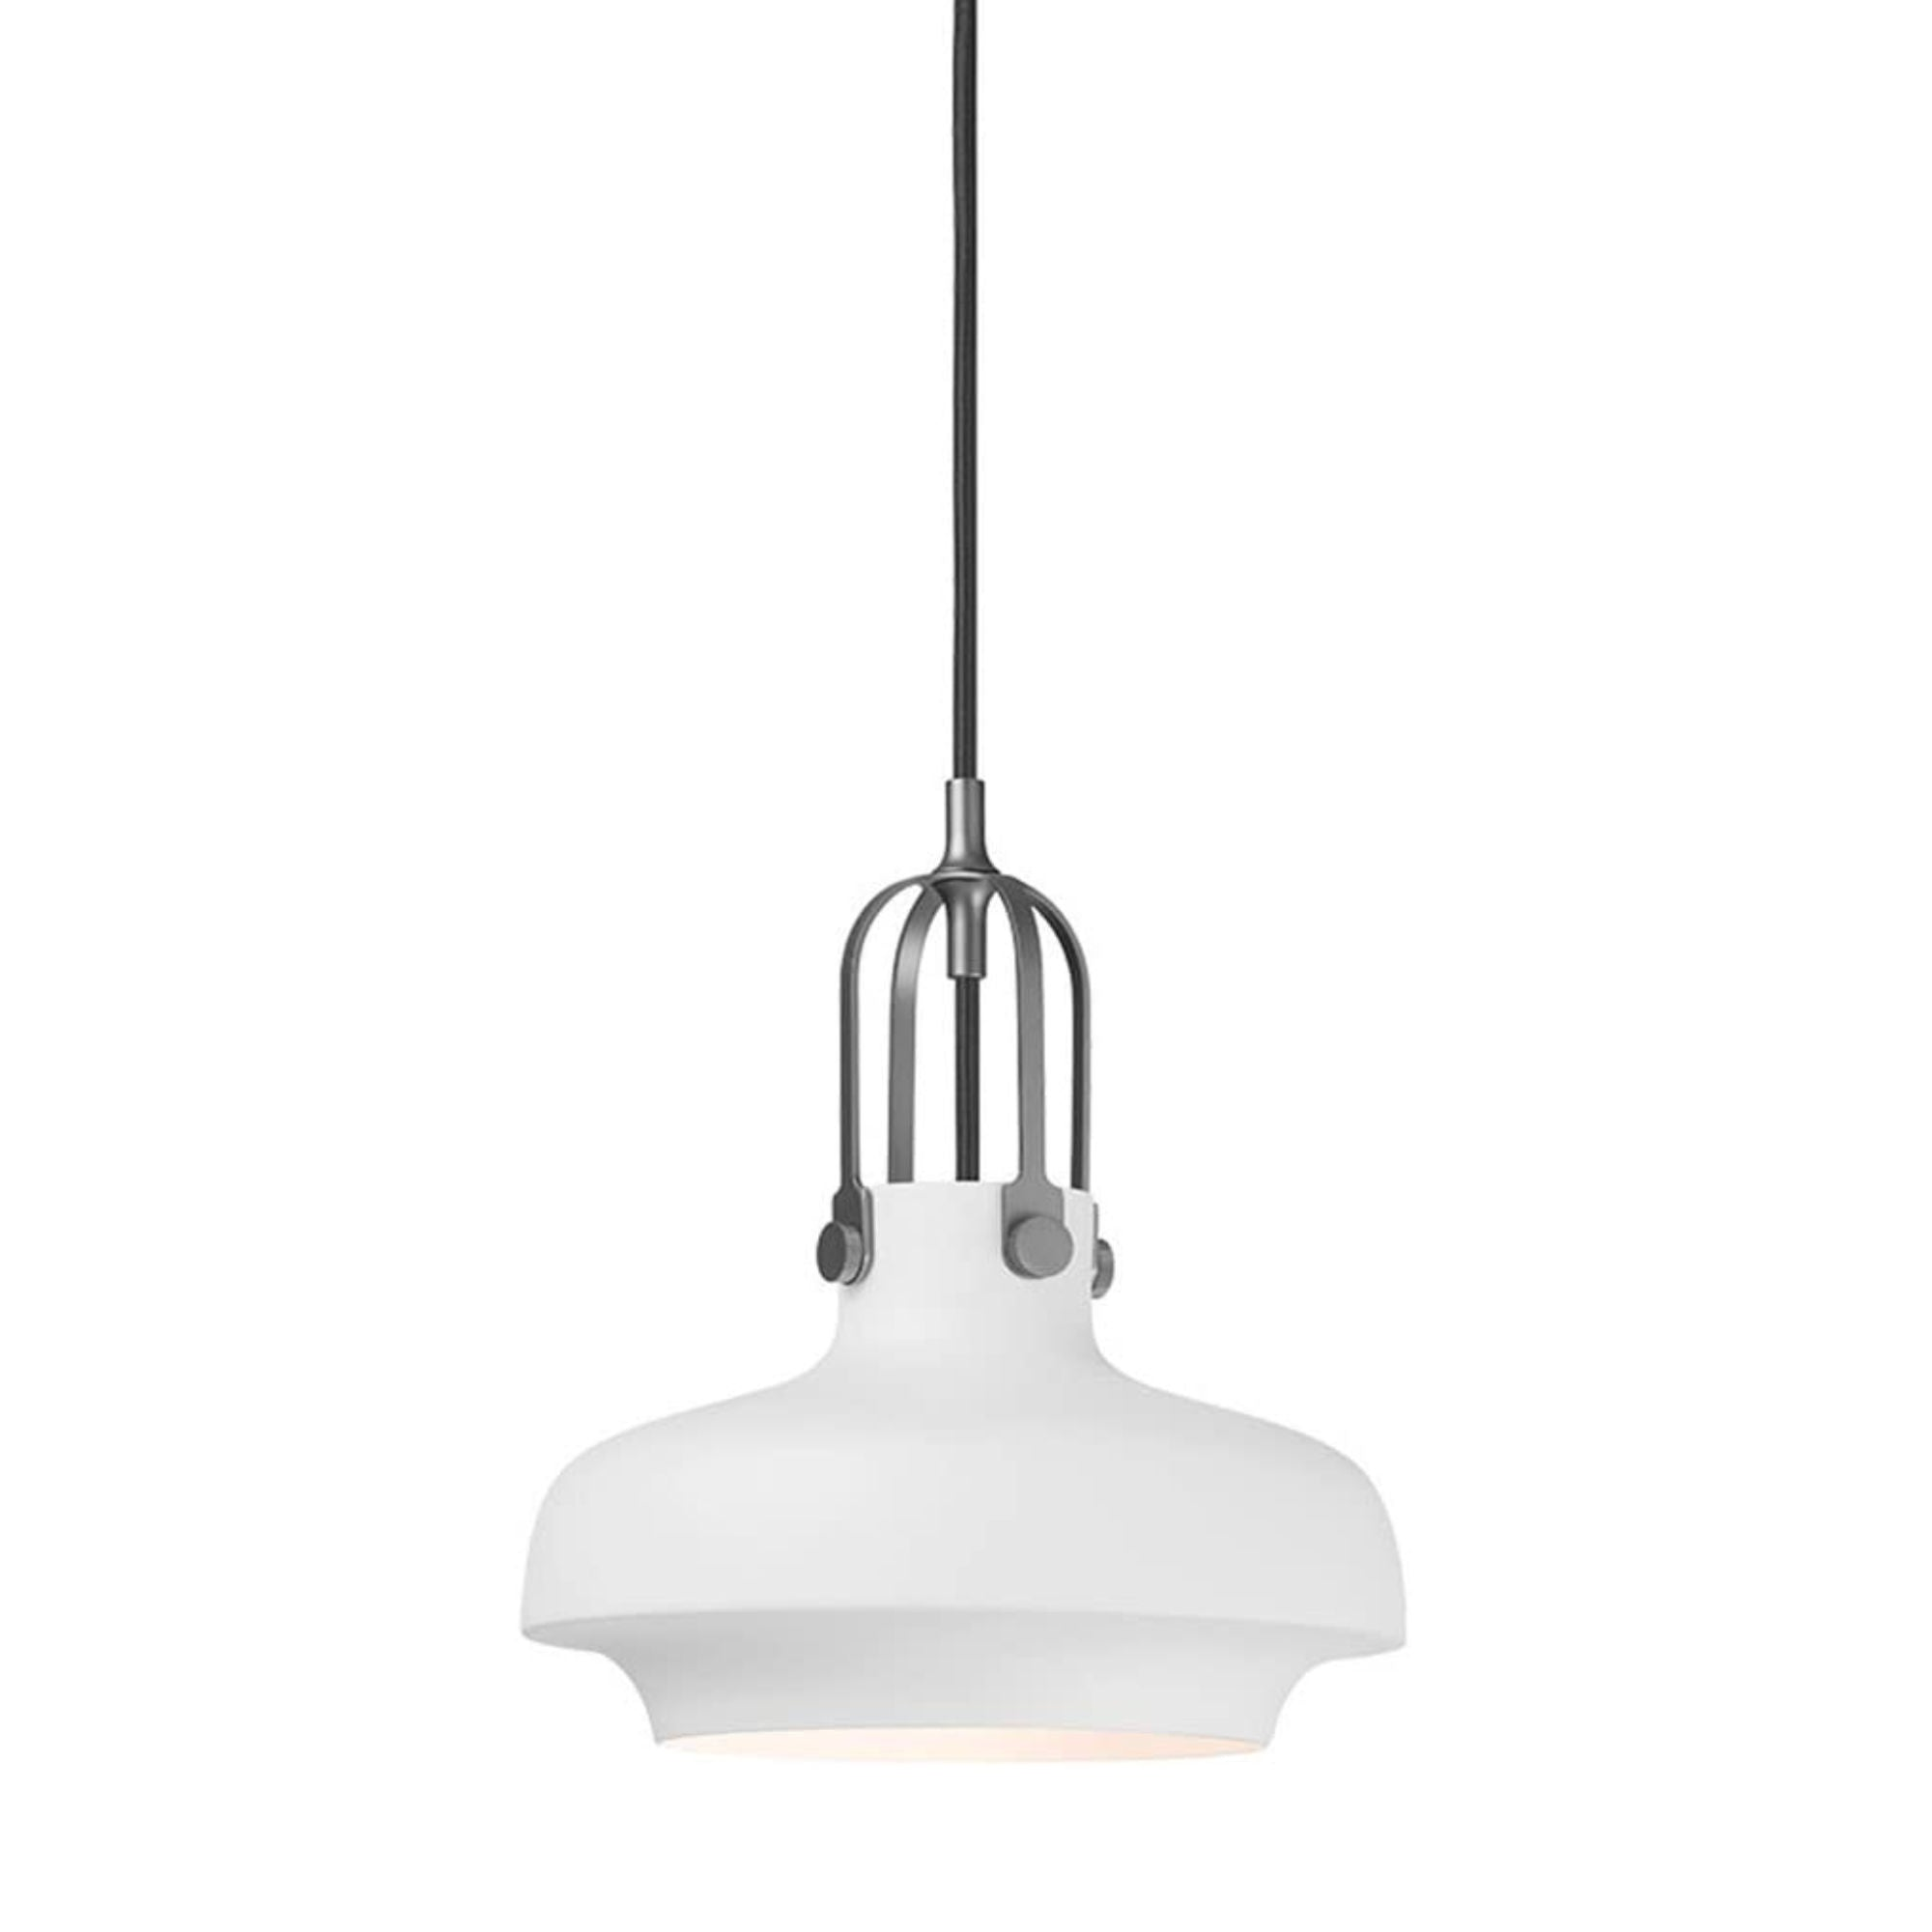 &Tradition SC6 Copenhagen pendant light, matt white - silver suspension